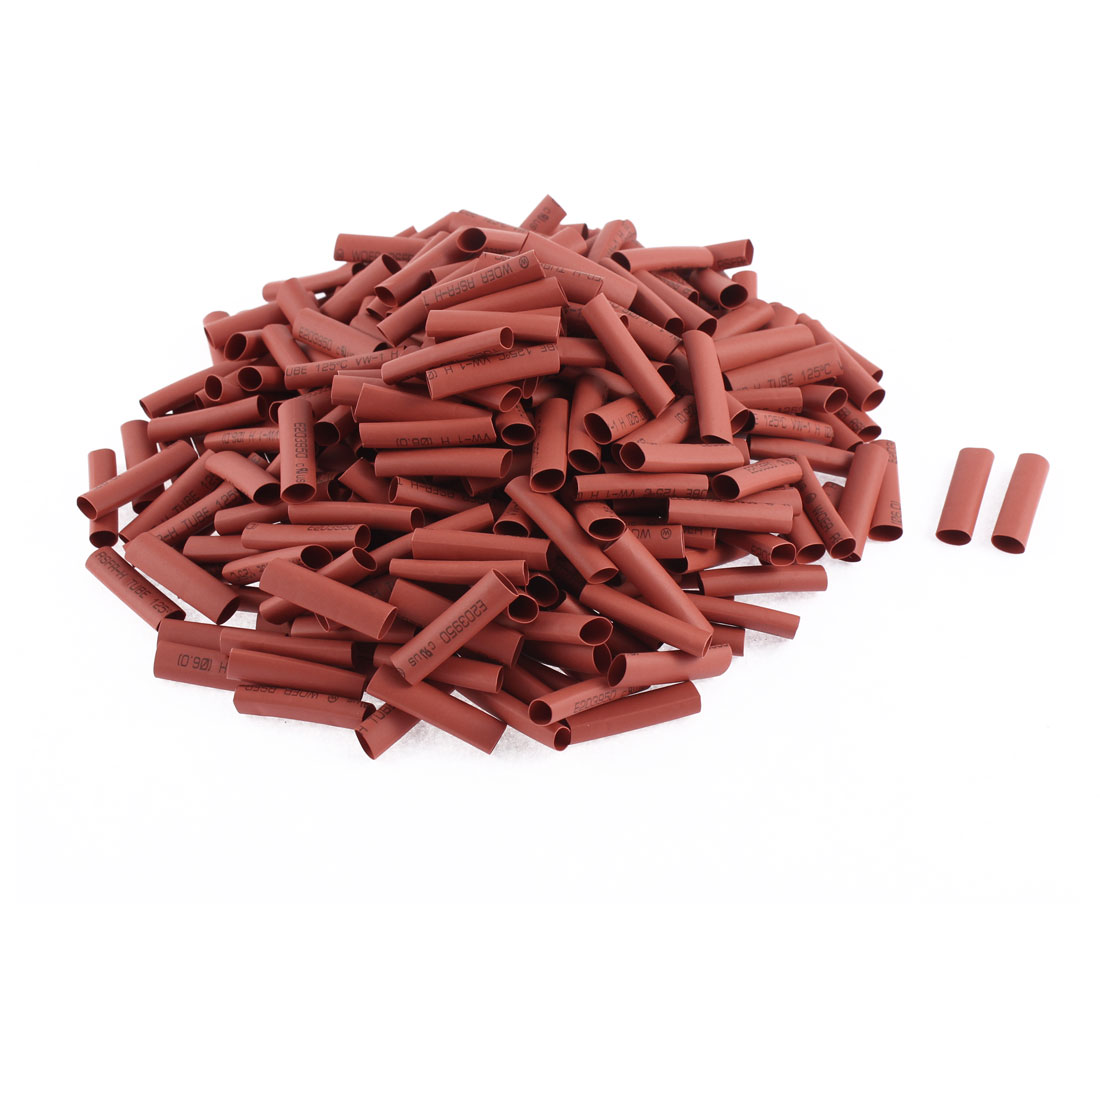 600V 125C 6mm Dia 2:1 Heat Shrinkable Tubing Shrink Tube Pipe Wire Cover Red 330pcs